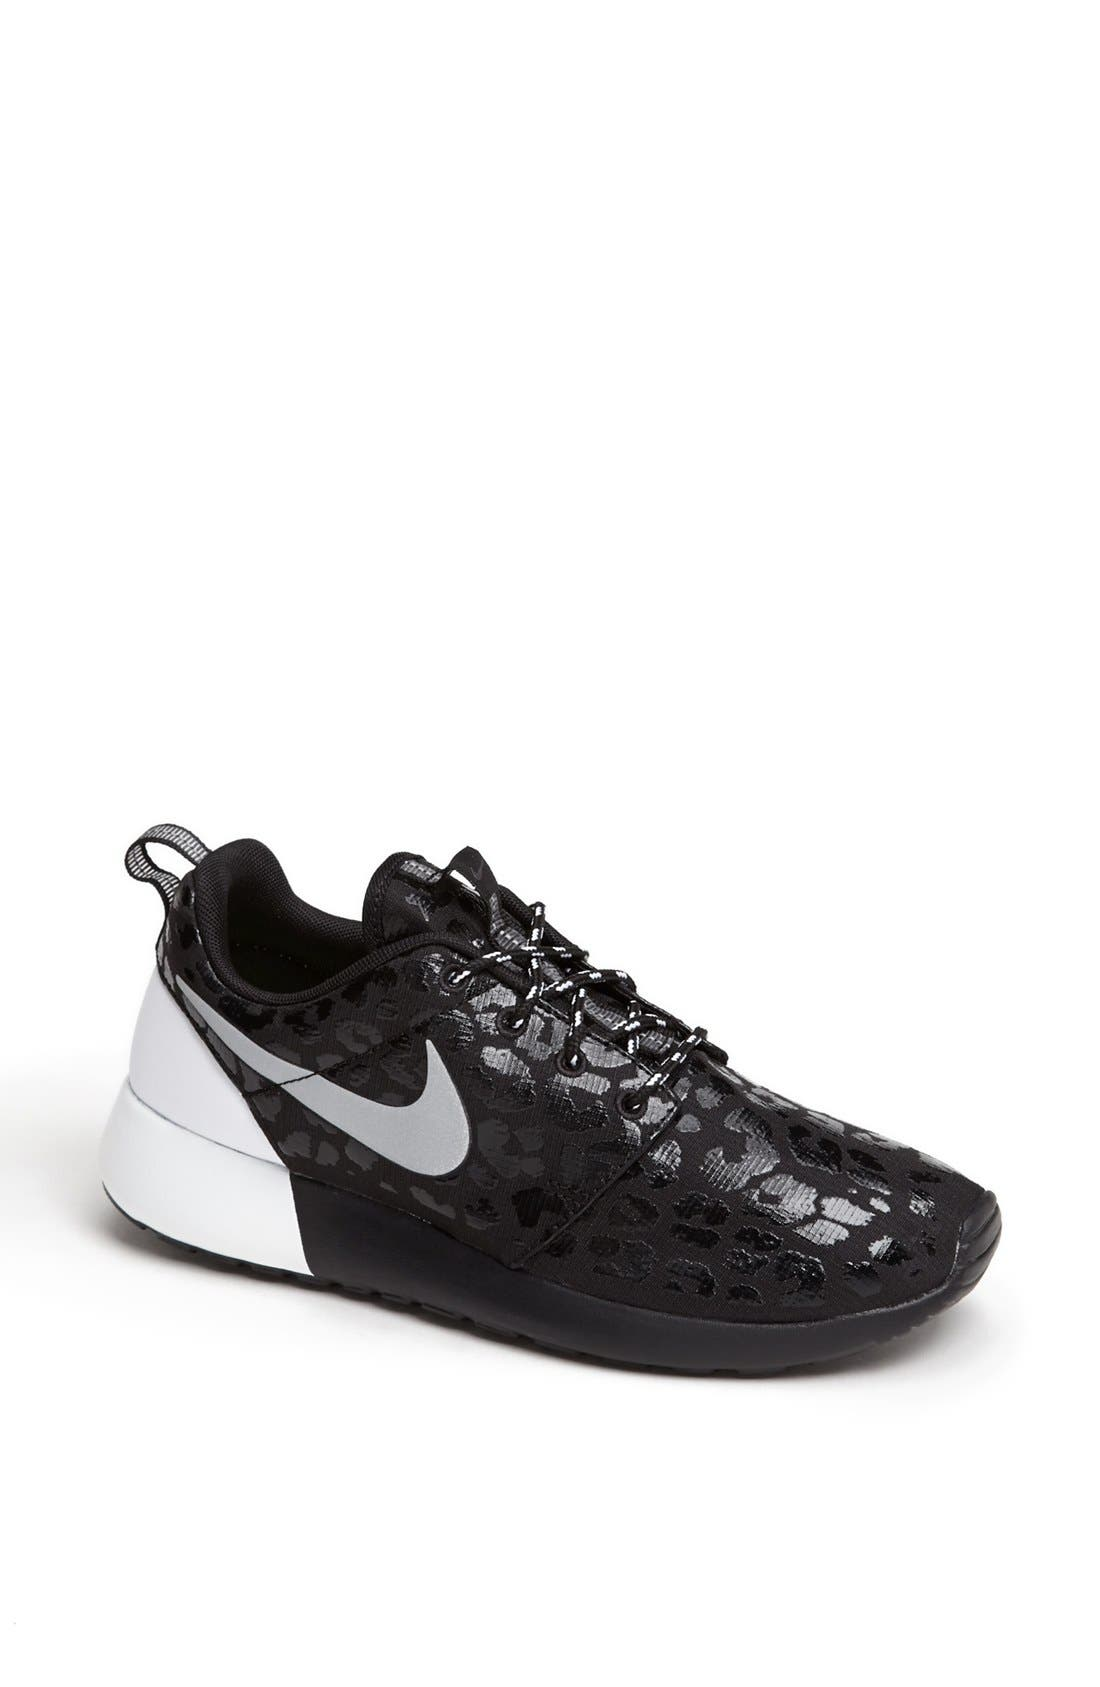 Main Image - Nike 'Roshe Run' Sneaker (Women)